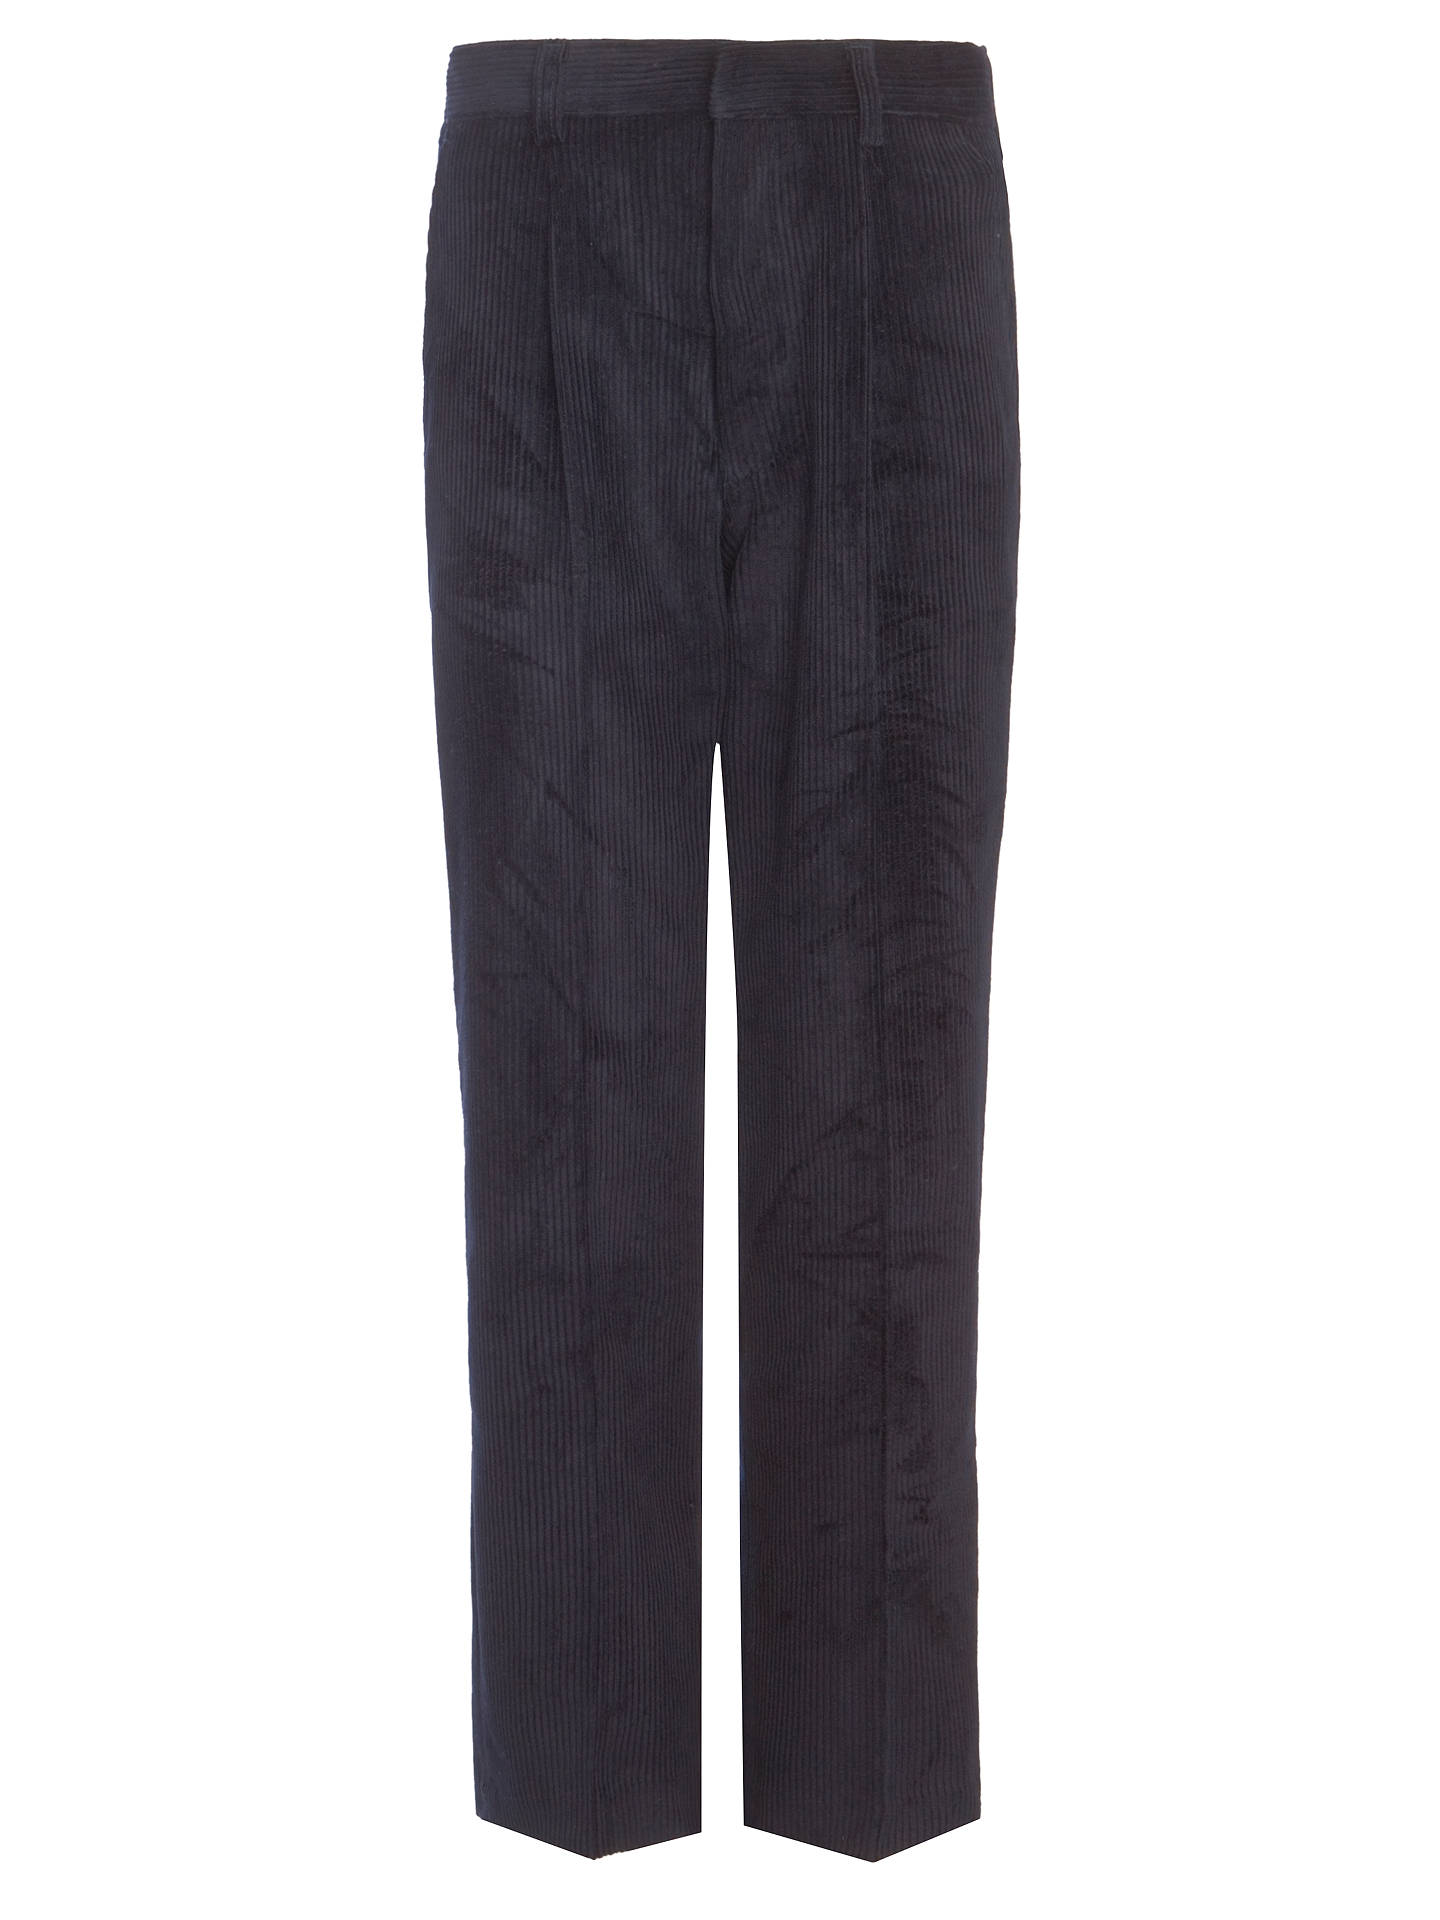 "BuyCord Boys' Trousers, Navy, W19"" Online at johnlewis.com"